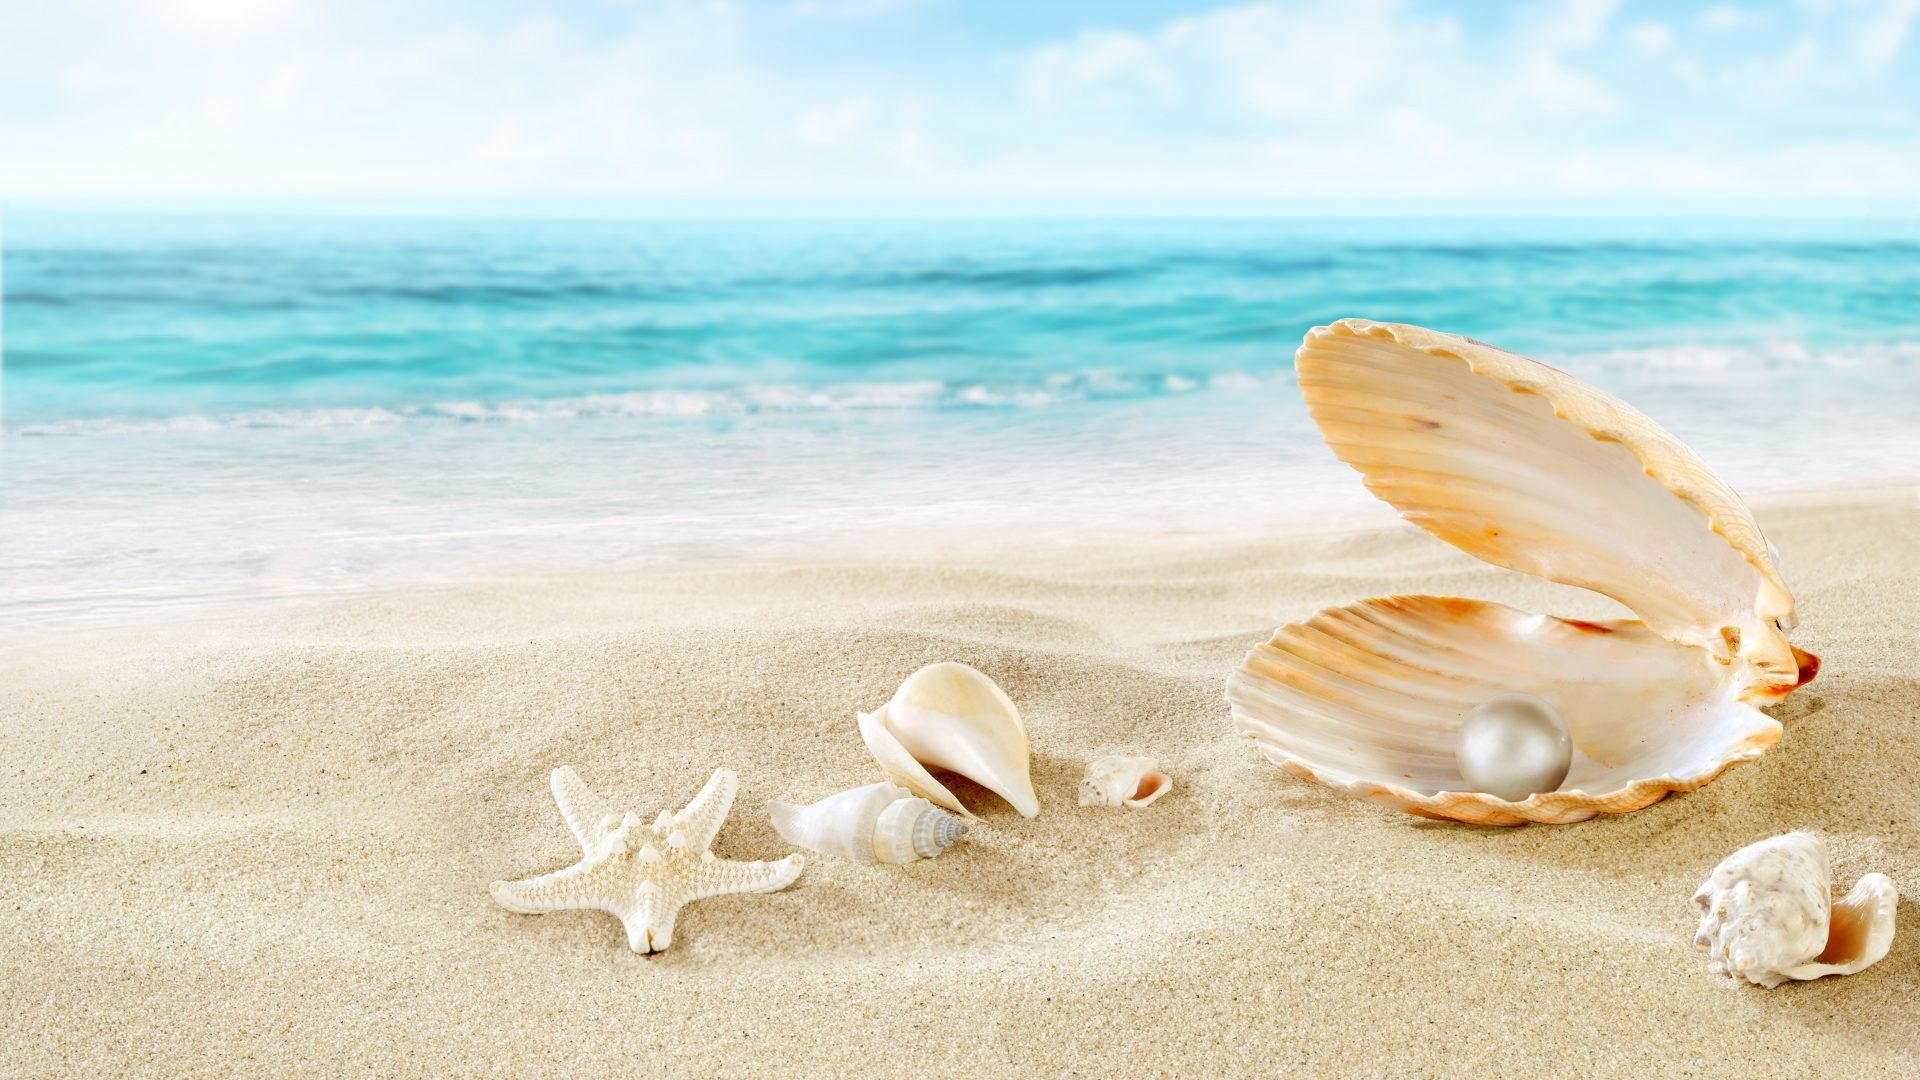 Shell Wallpapers and Background Images   stmednet 1920x1080